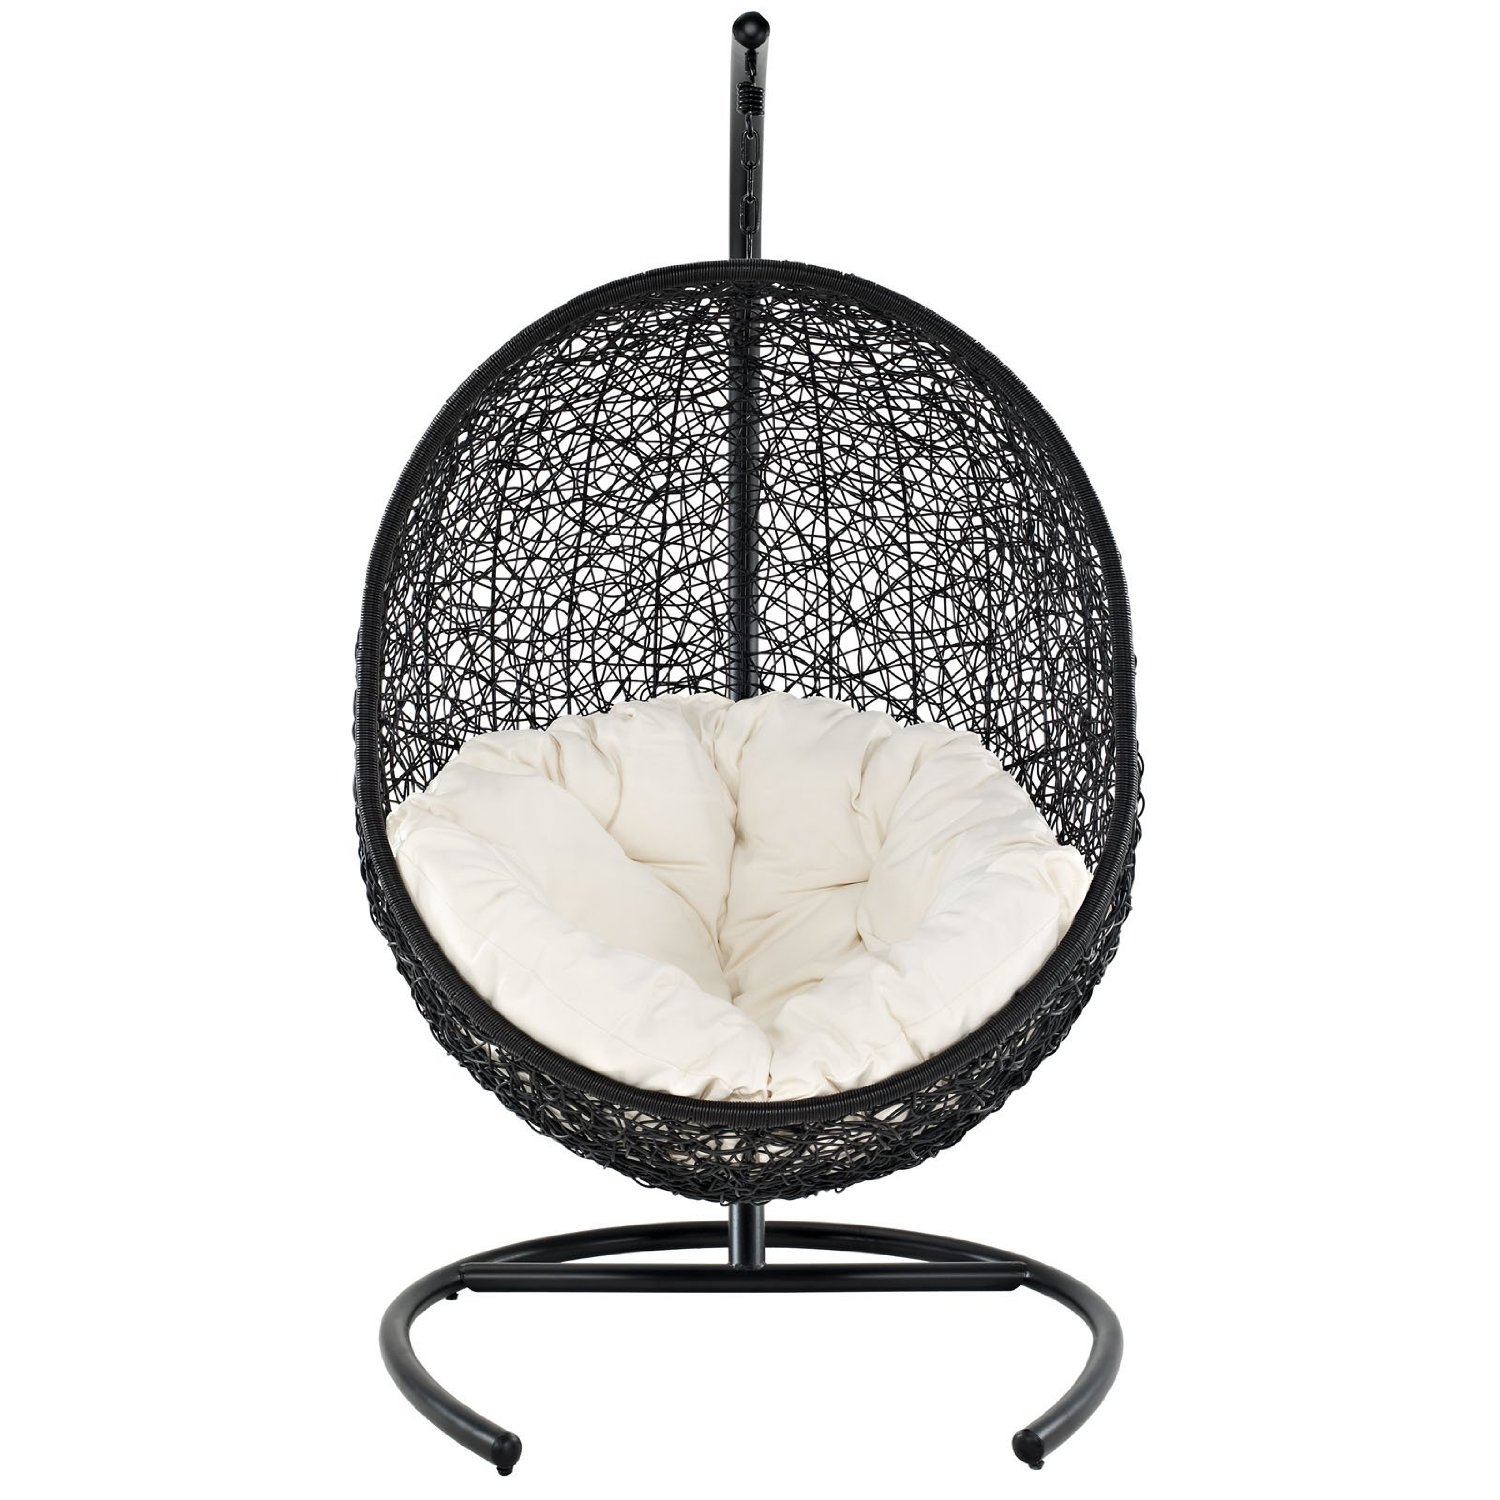 black Wicker Rattan swingasan chair with white cushion ideas